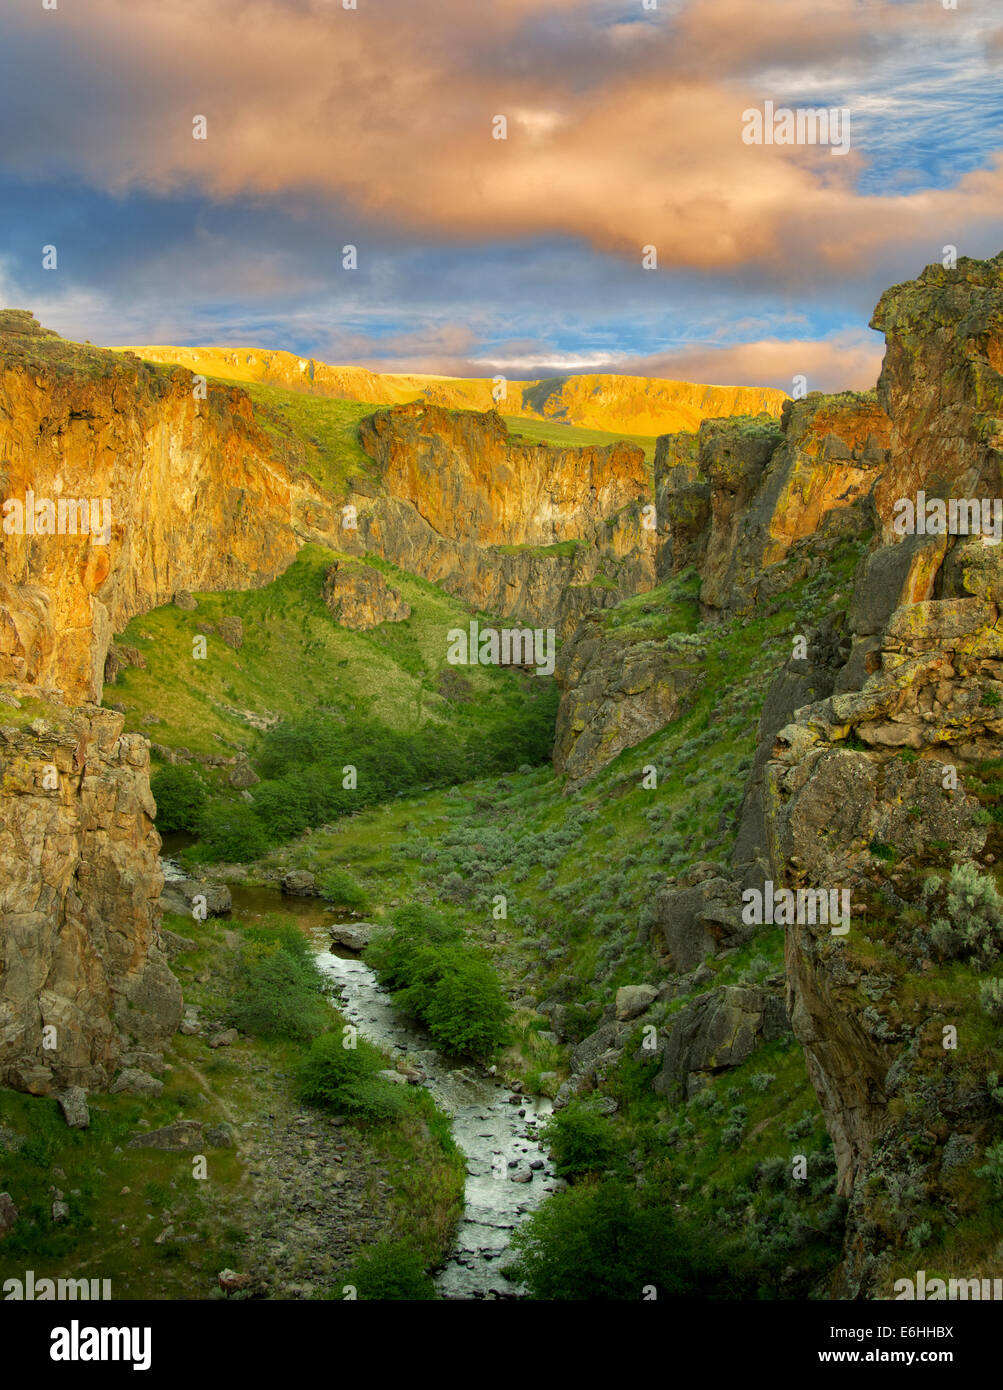 Secours Creek canyon avec coucher de nuages. Malheur County, Oregon Photo Stock